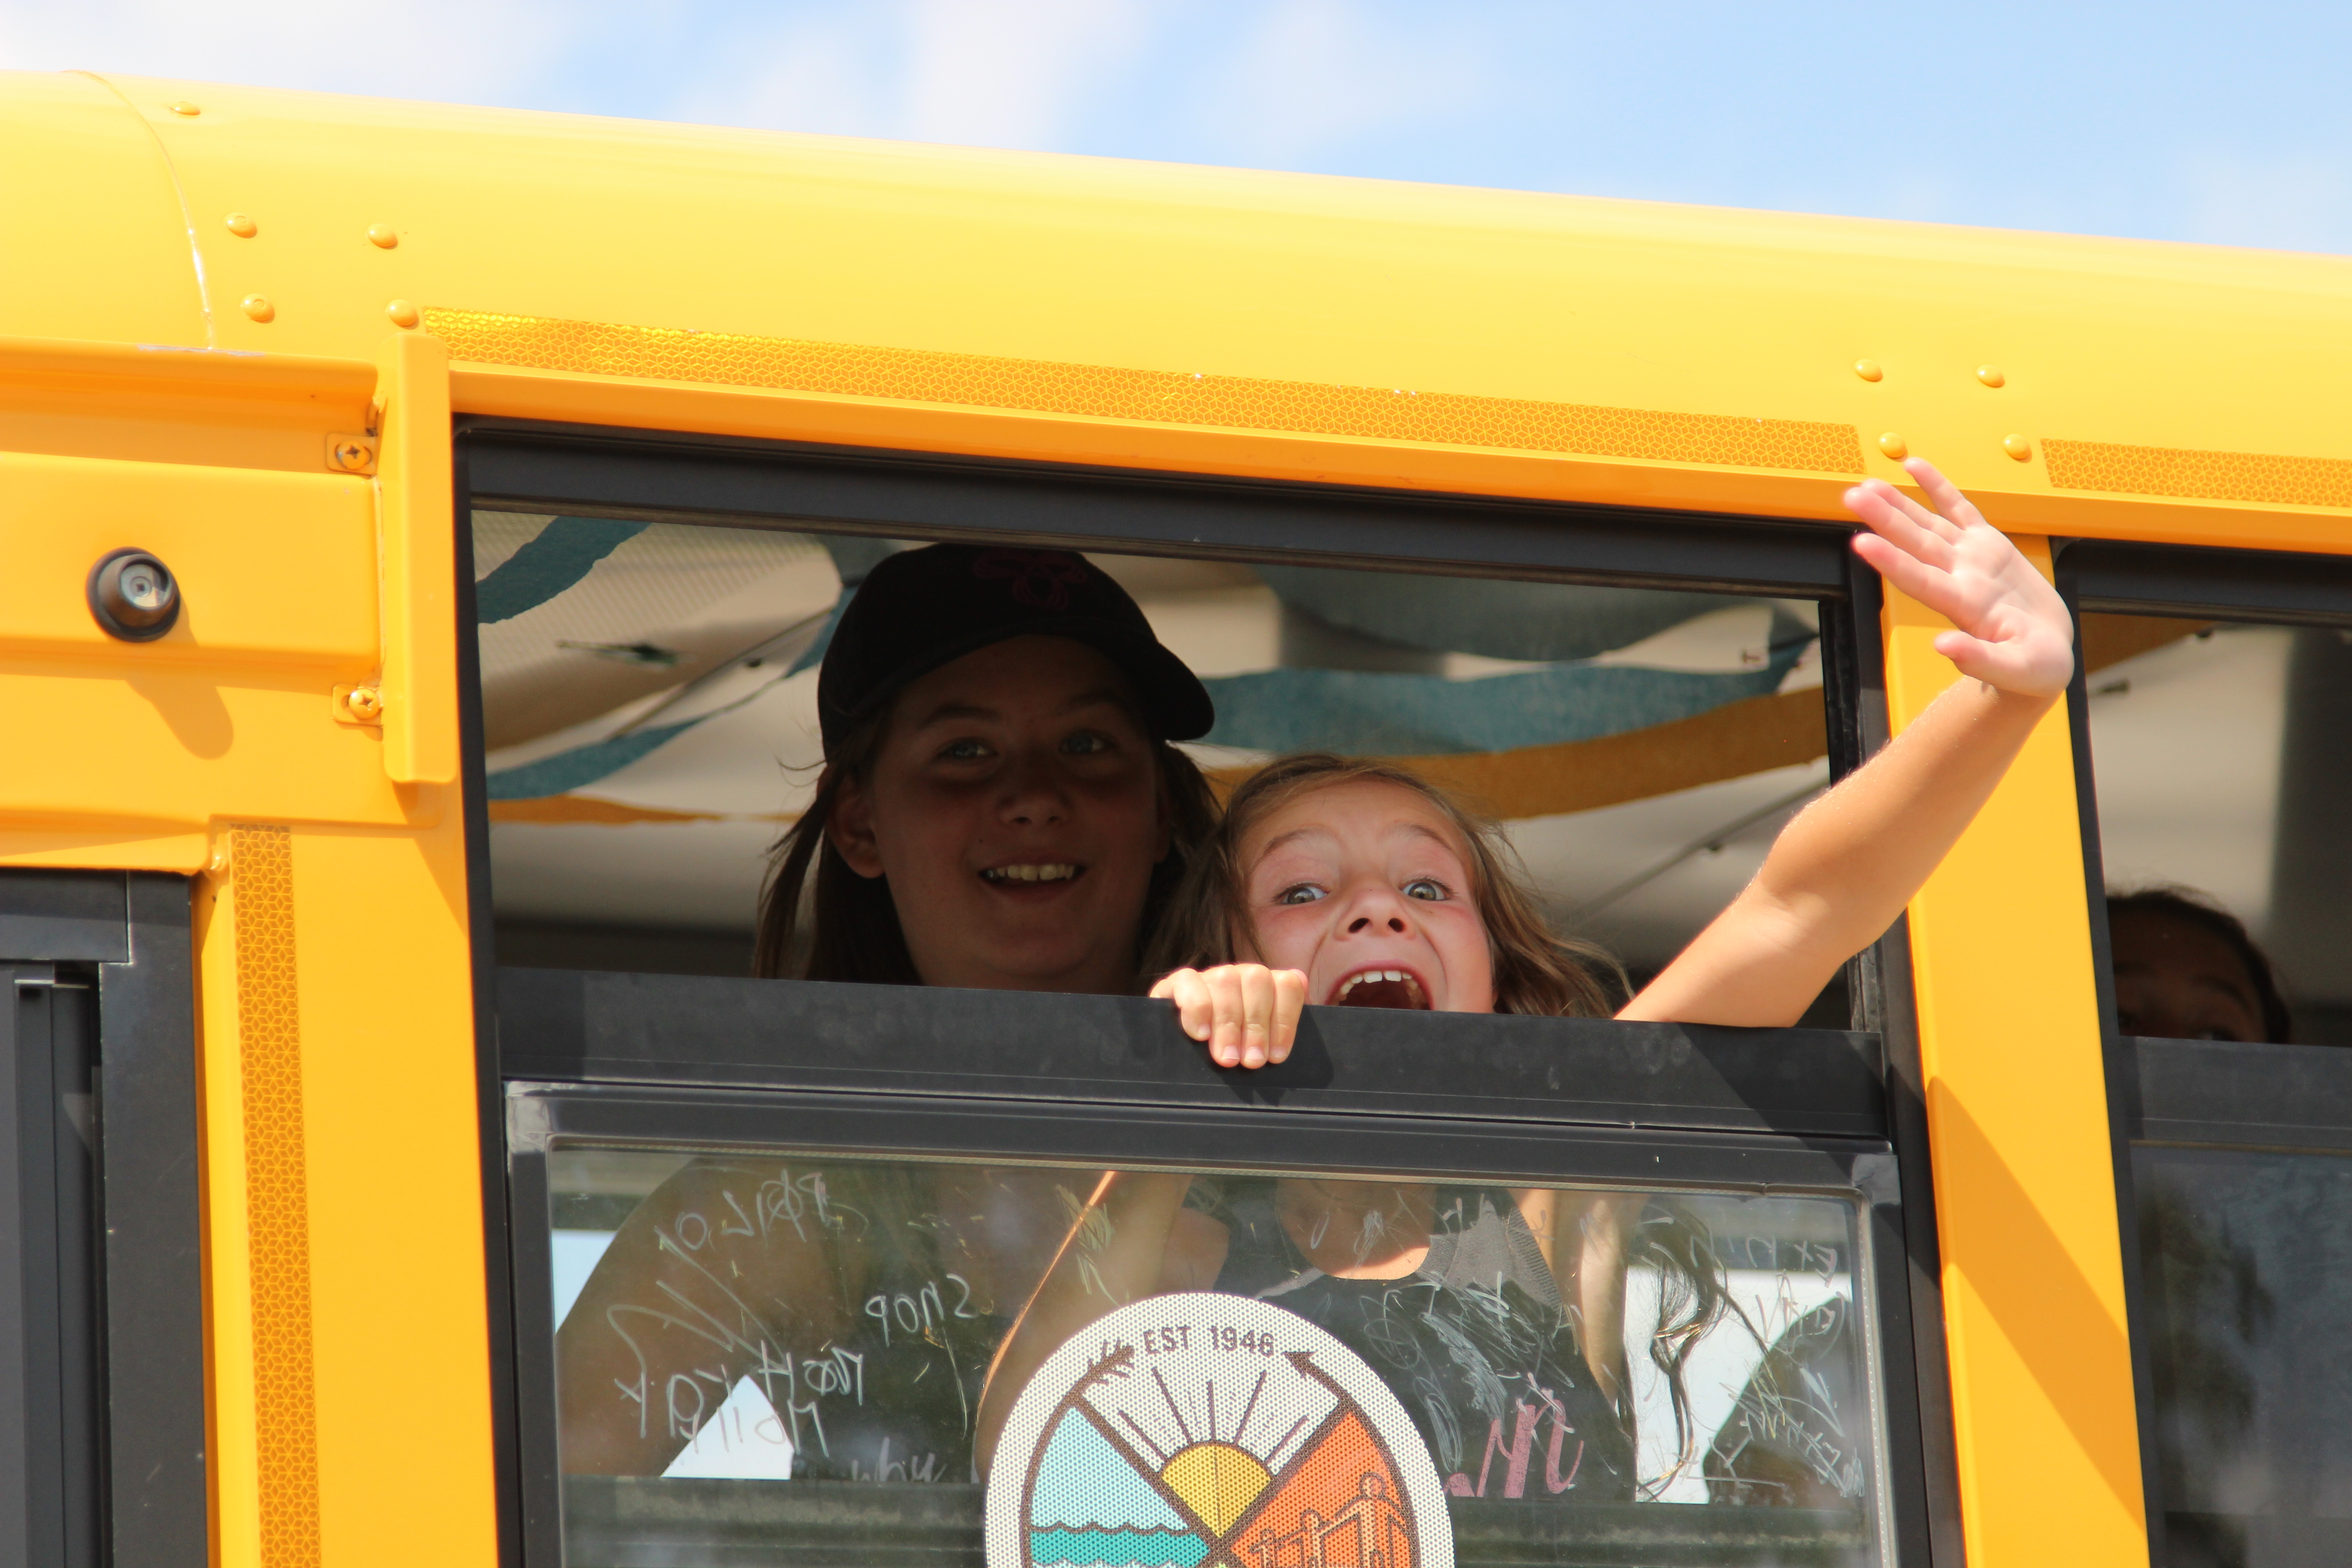 Waving goodbye from the Camp Robin Hood bus. Camp Robin Hood is Canada's oldest and largest day camp.